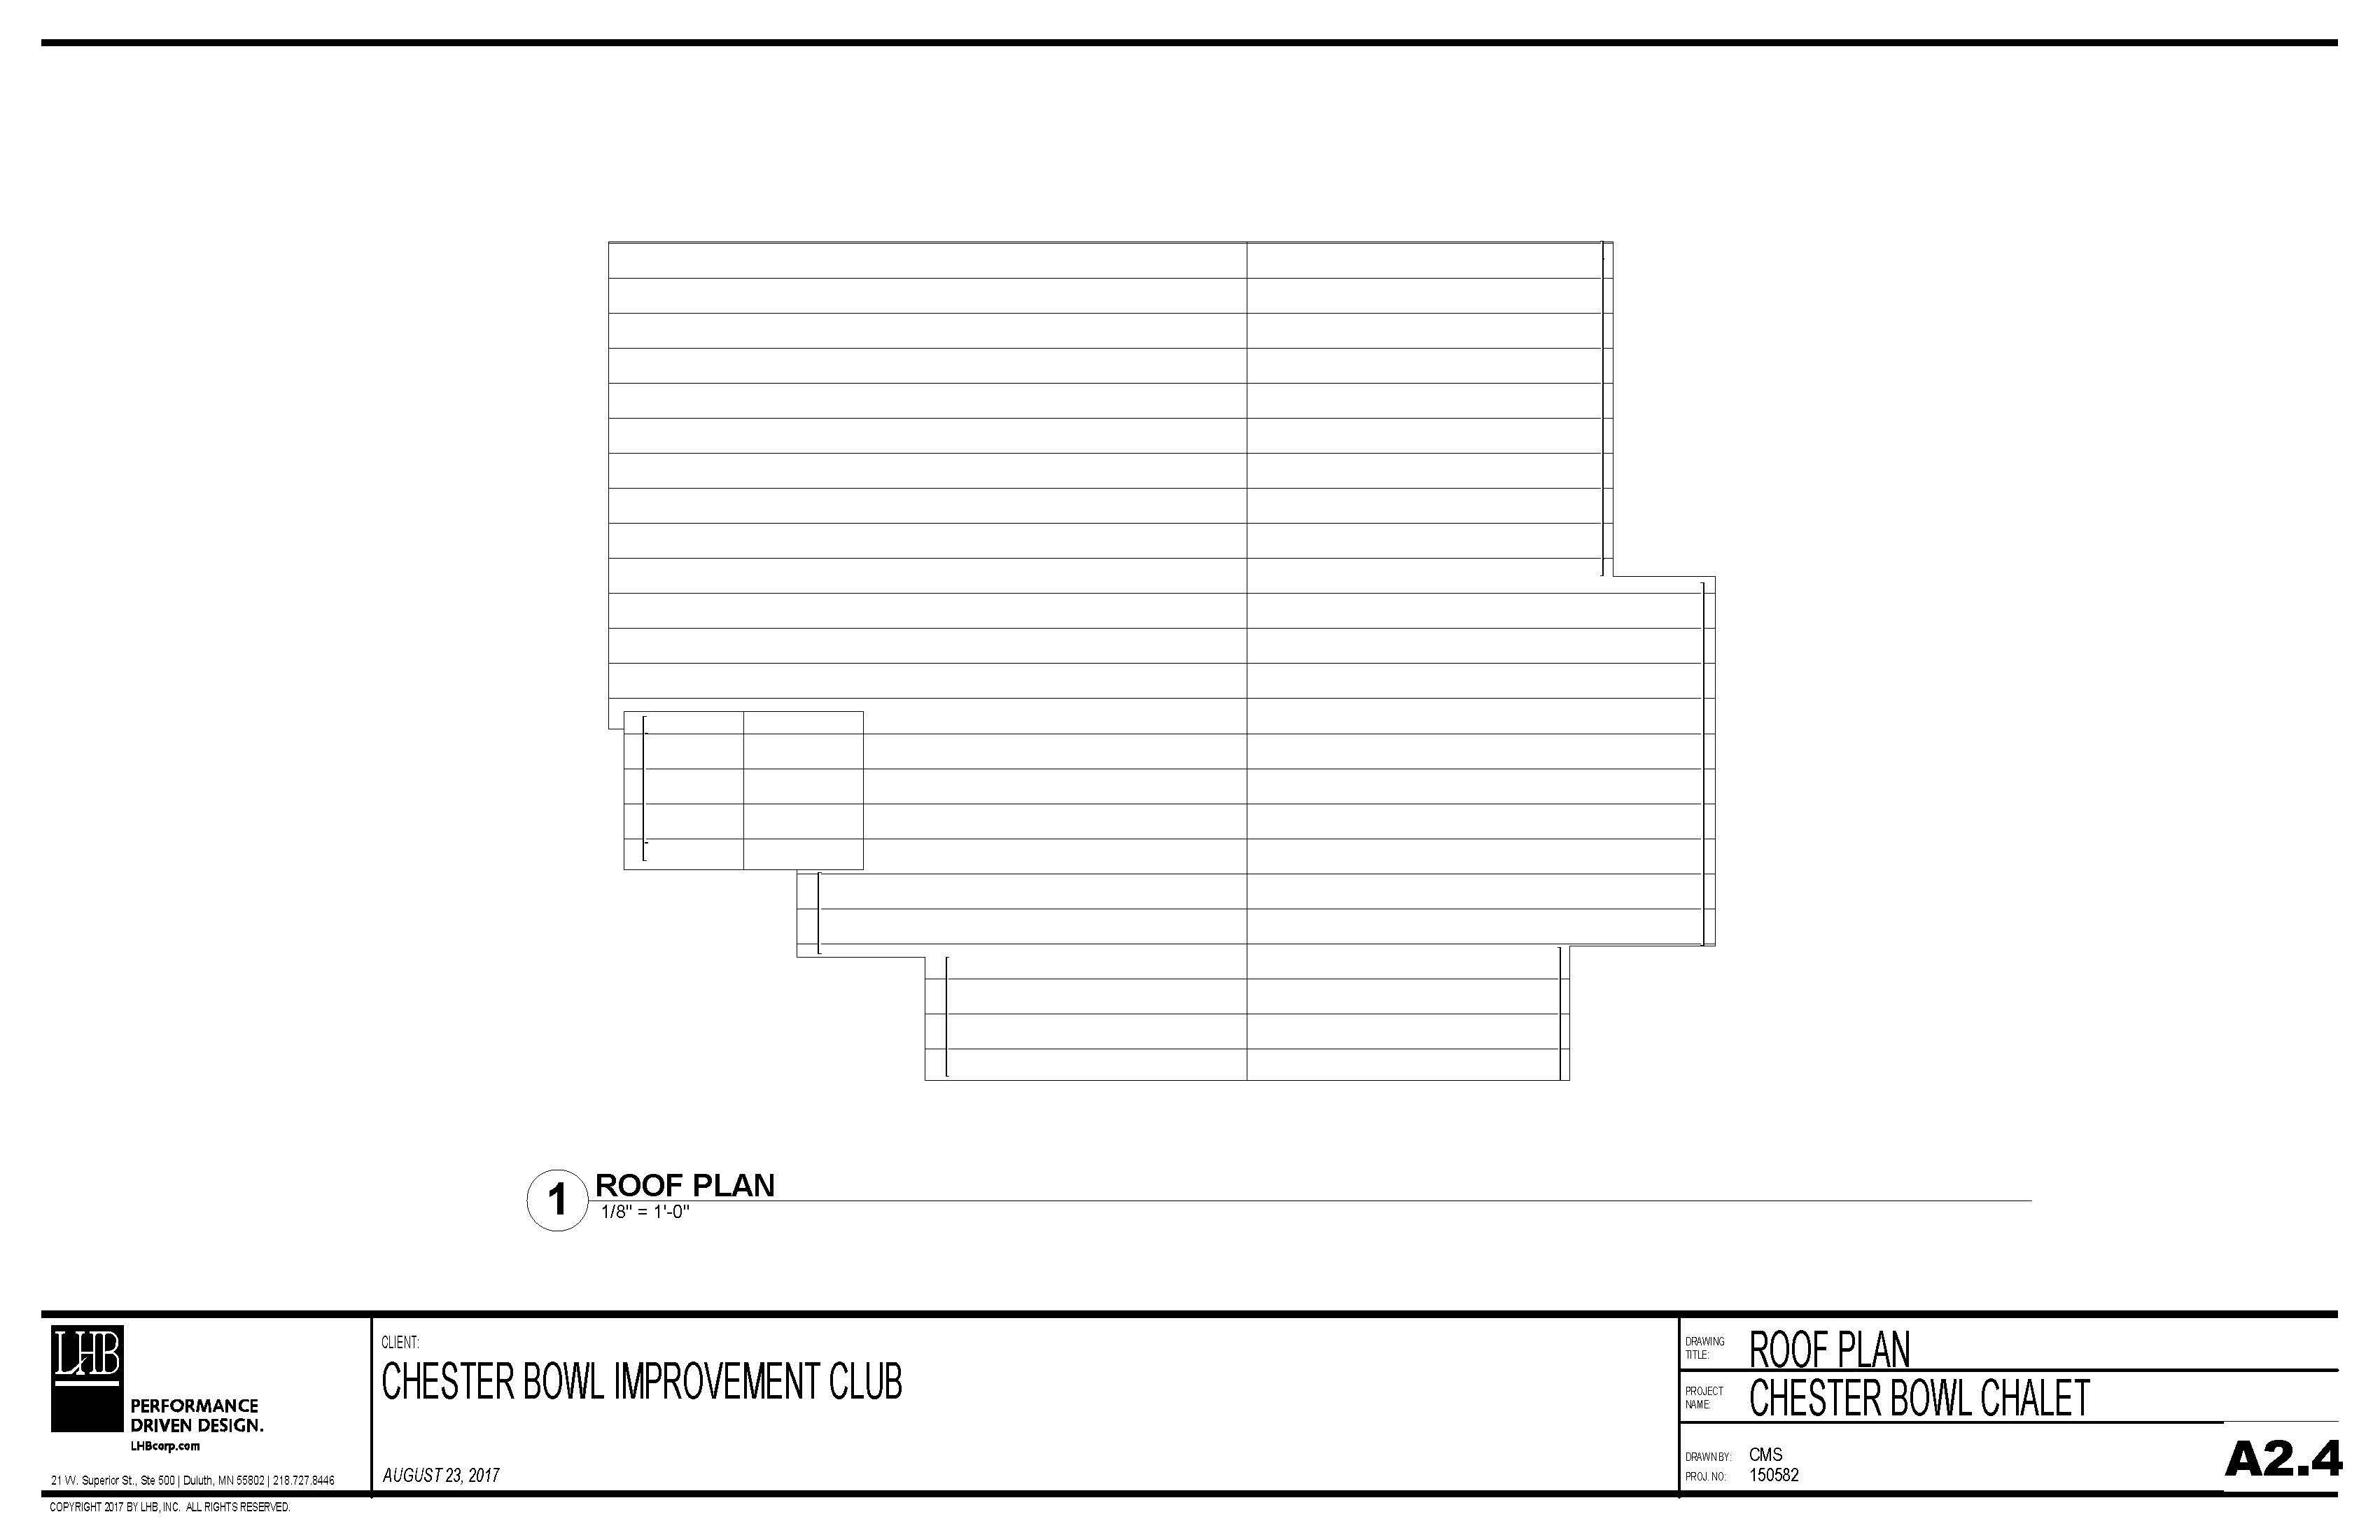 Draft plans for the roof of the Thom Storm Chalet.